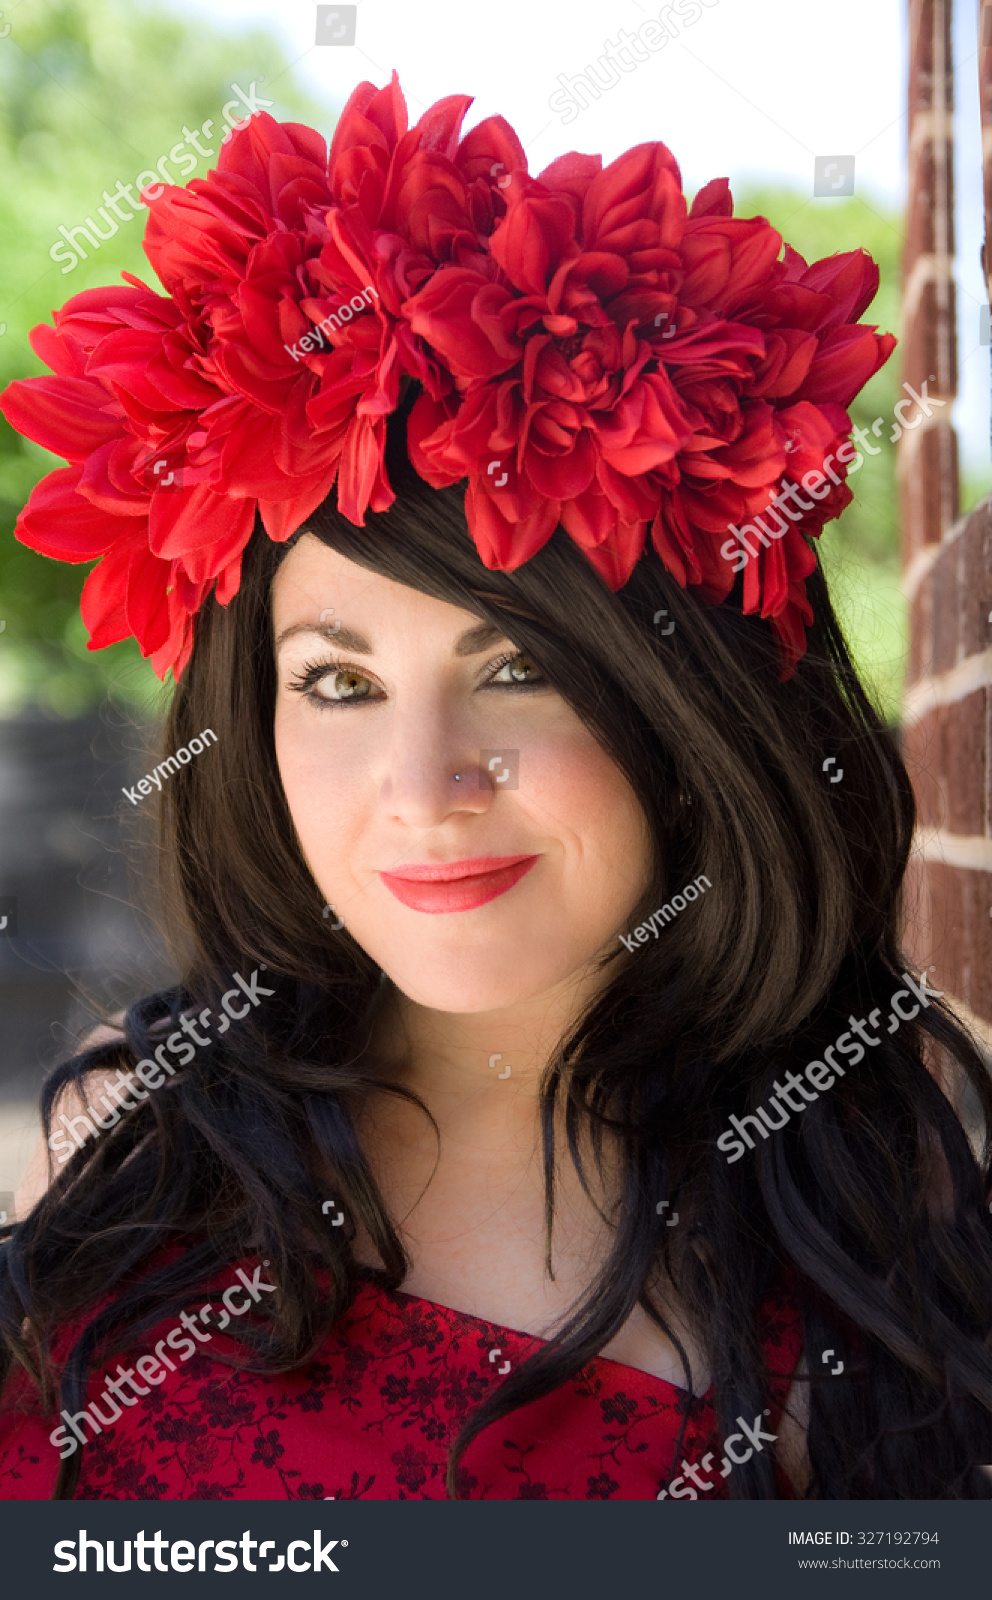 Beautiful woman red flower crown red stock photo royalty free beautiful woman in red flower crown and red lipstick izmirmasajfo